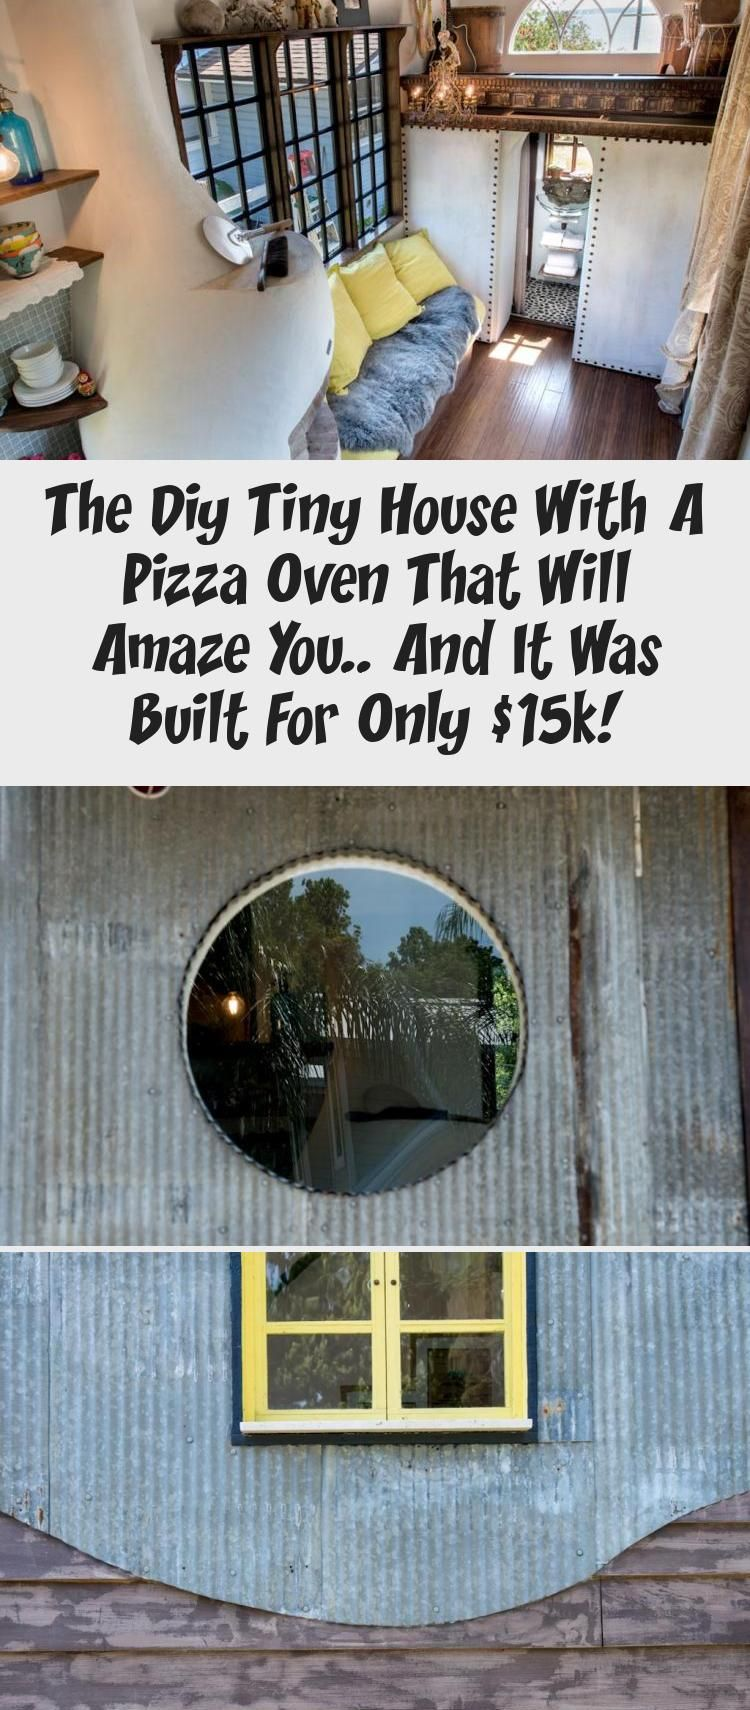 The DIY Tiny House with a Pizza Oven That Will Amaze You.. And It Was Built for Only $15k! – Tiny House Lover #tinyhouseinteriorWalls #tinyhouseinteriorCloset #tinyhouseinteriorCabin #tinyhouseinteriorFireplace #Mobiletinyhouseinterior